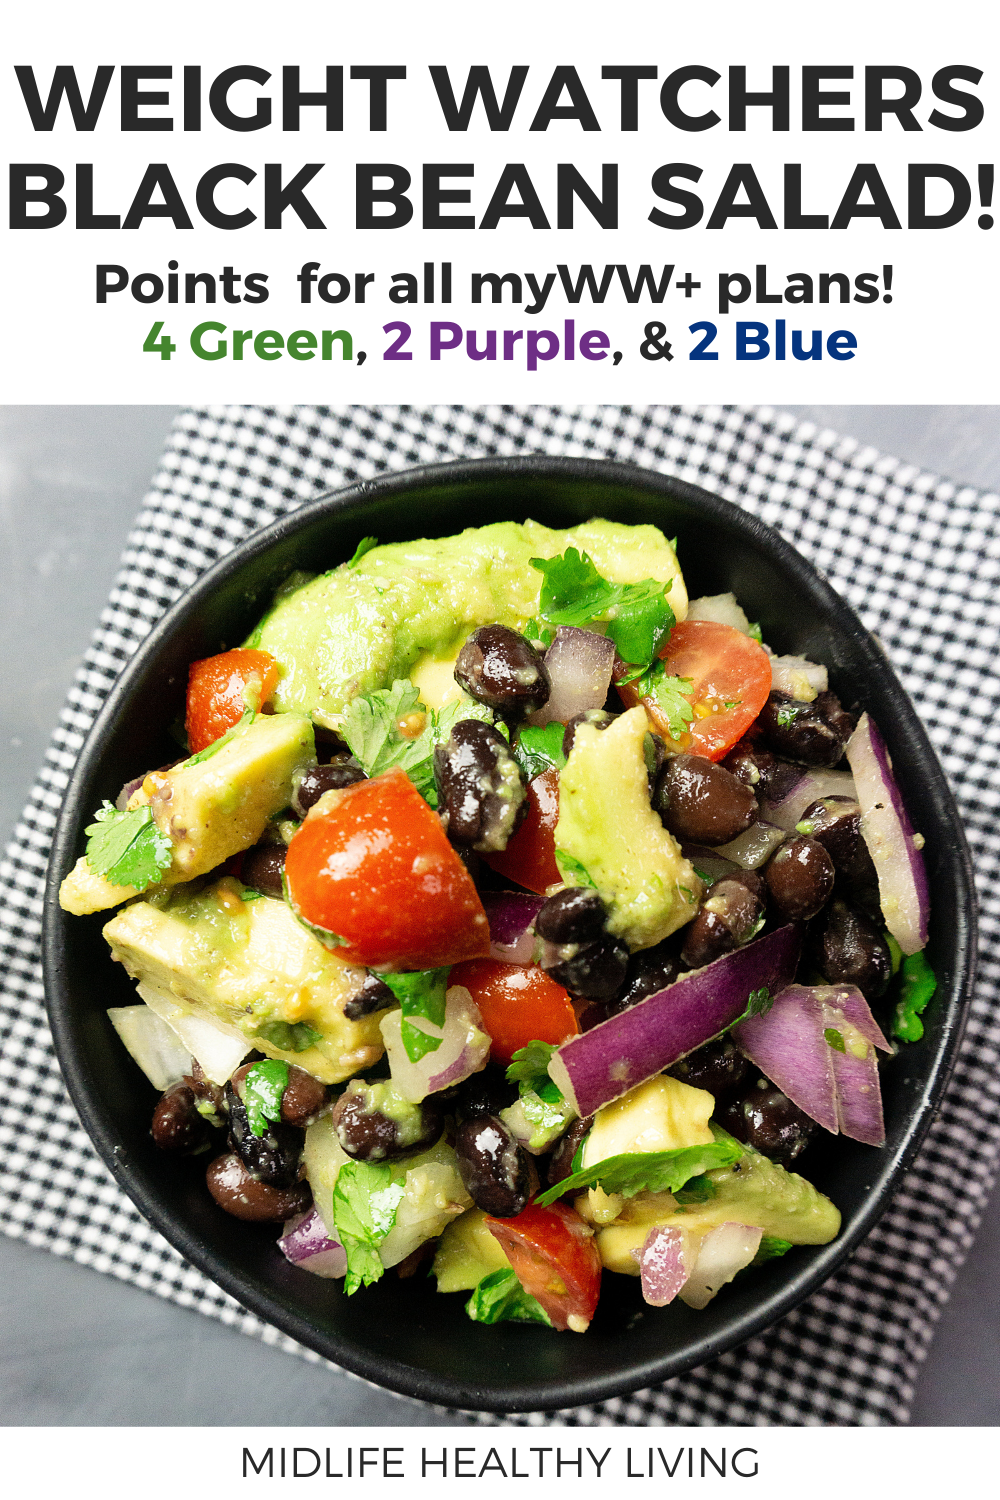 Pin showing the finished weight watchers black bean salad with points and title at the top of the images.